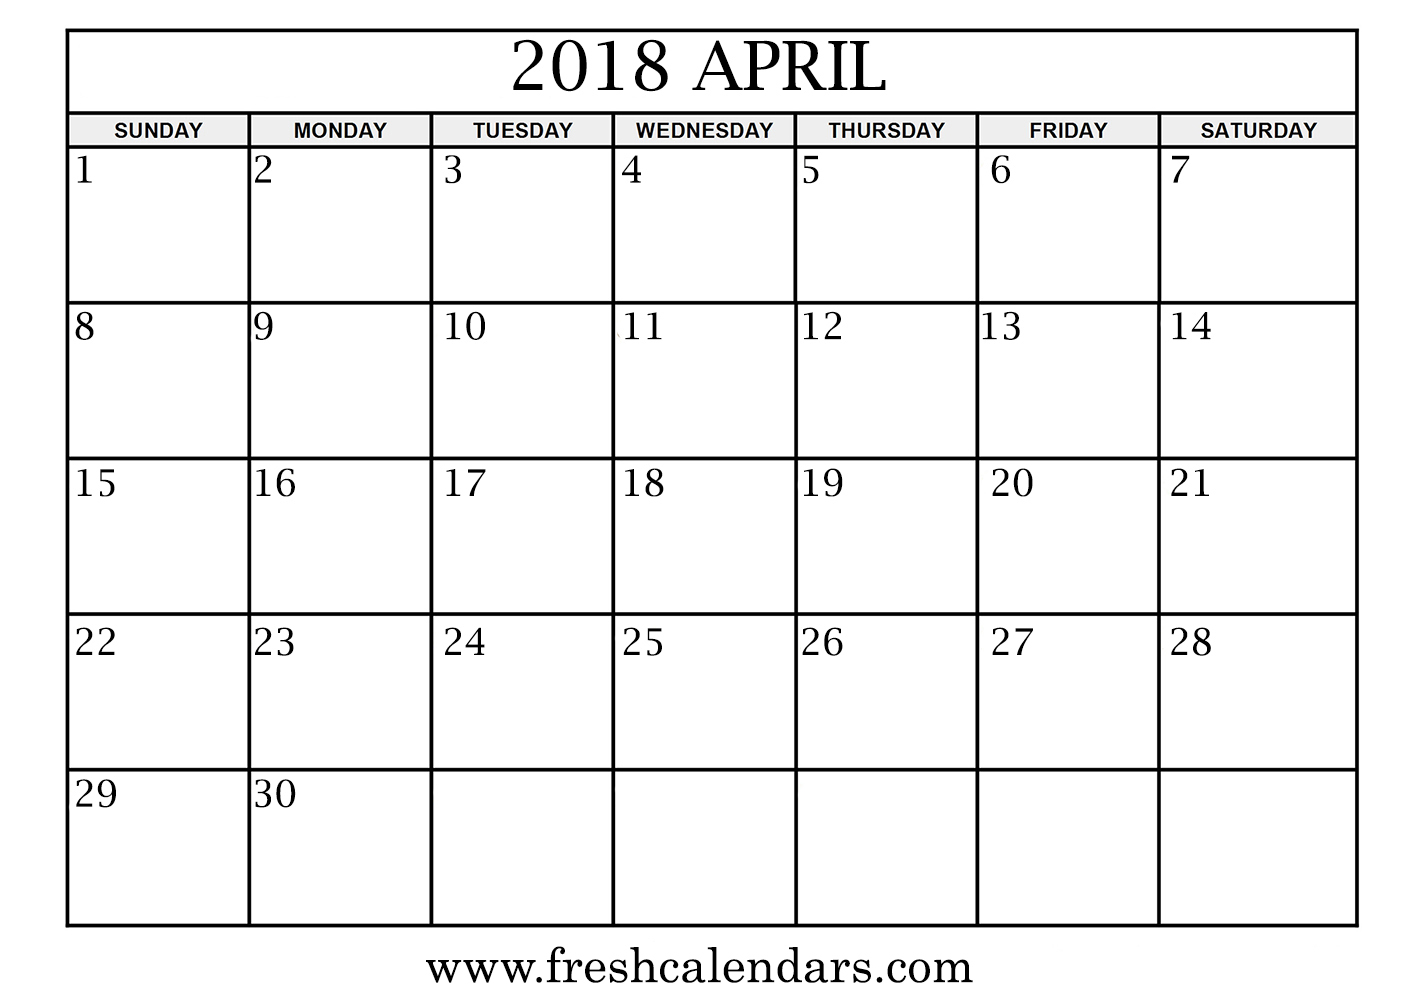 Blank Calendar Template April : Blank april calendar printable templates